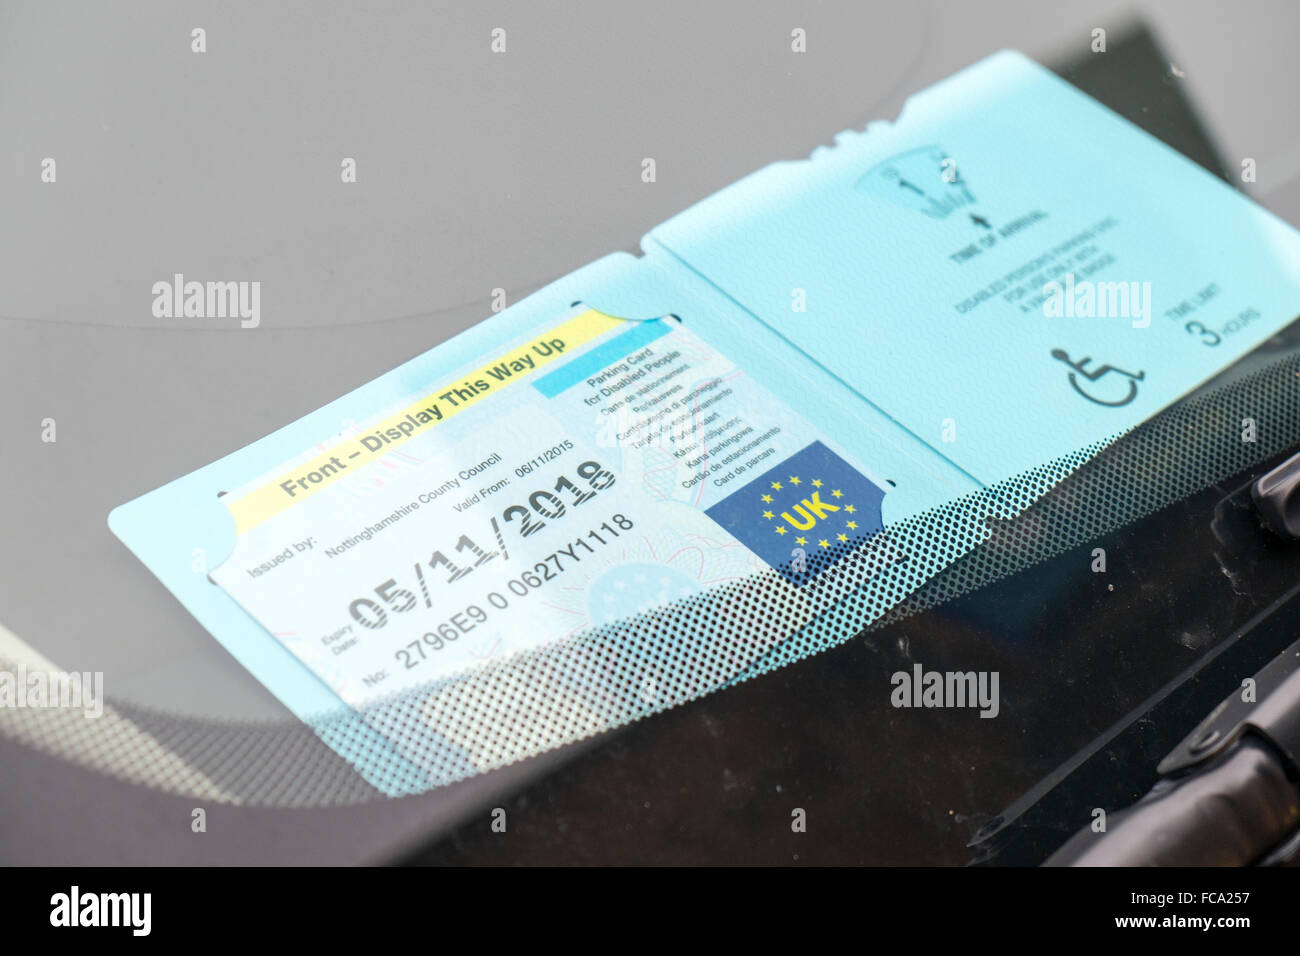 Disabled parking permit badge car park disability space spaces handicapped card blue badge impaired invalid invalidity - Stock Image